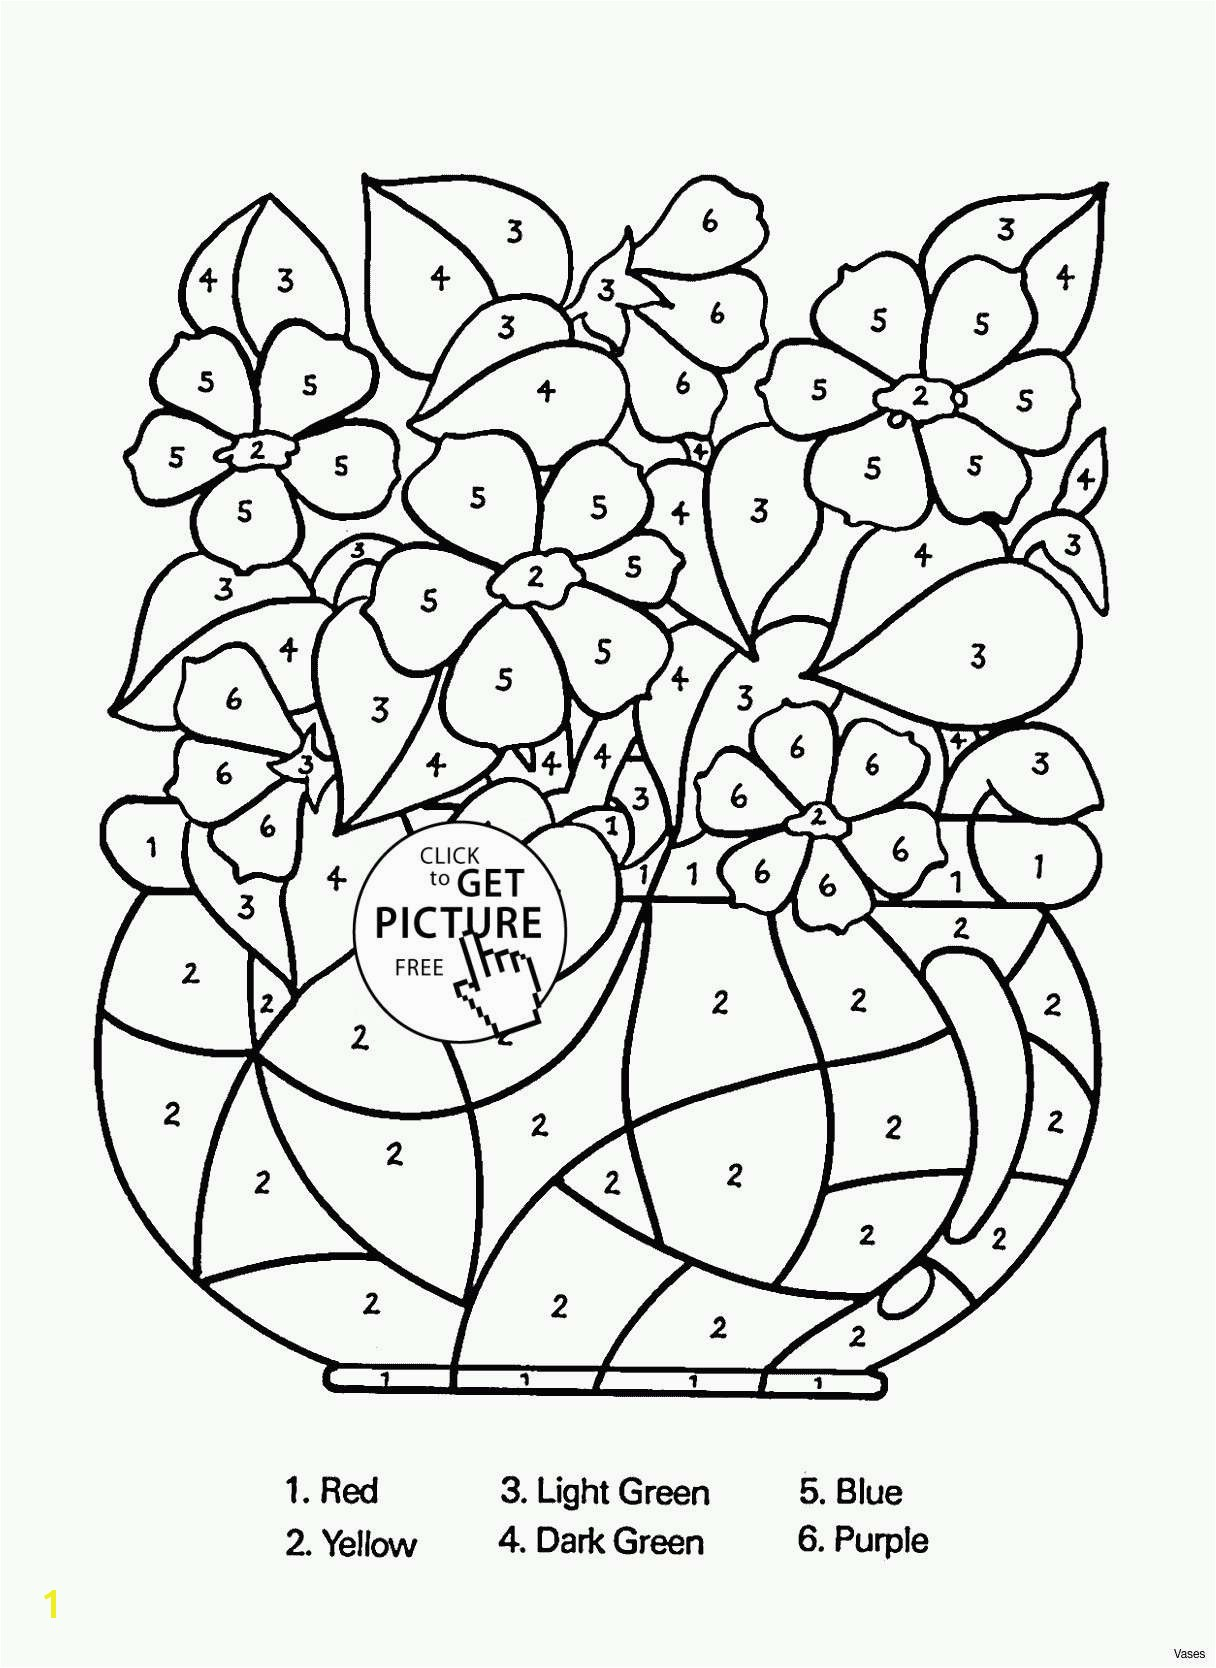 Kickball Coloring Pages Free Christmas Coloring Pages for Middle School